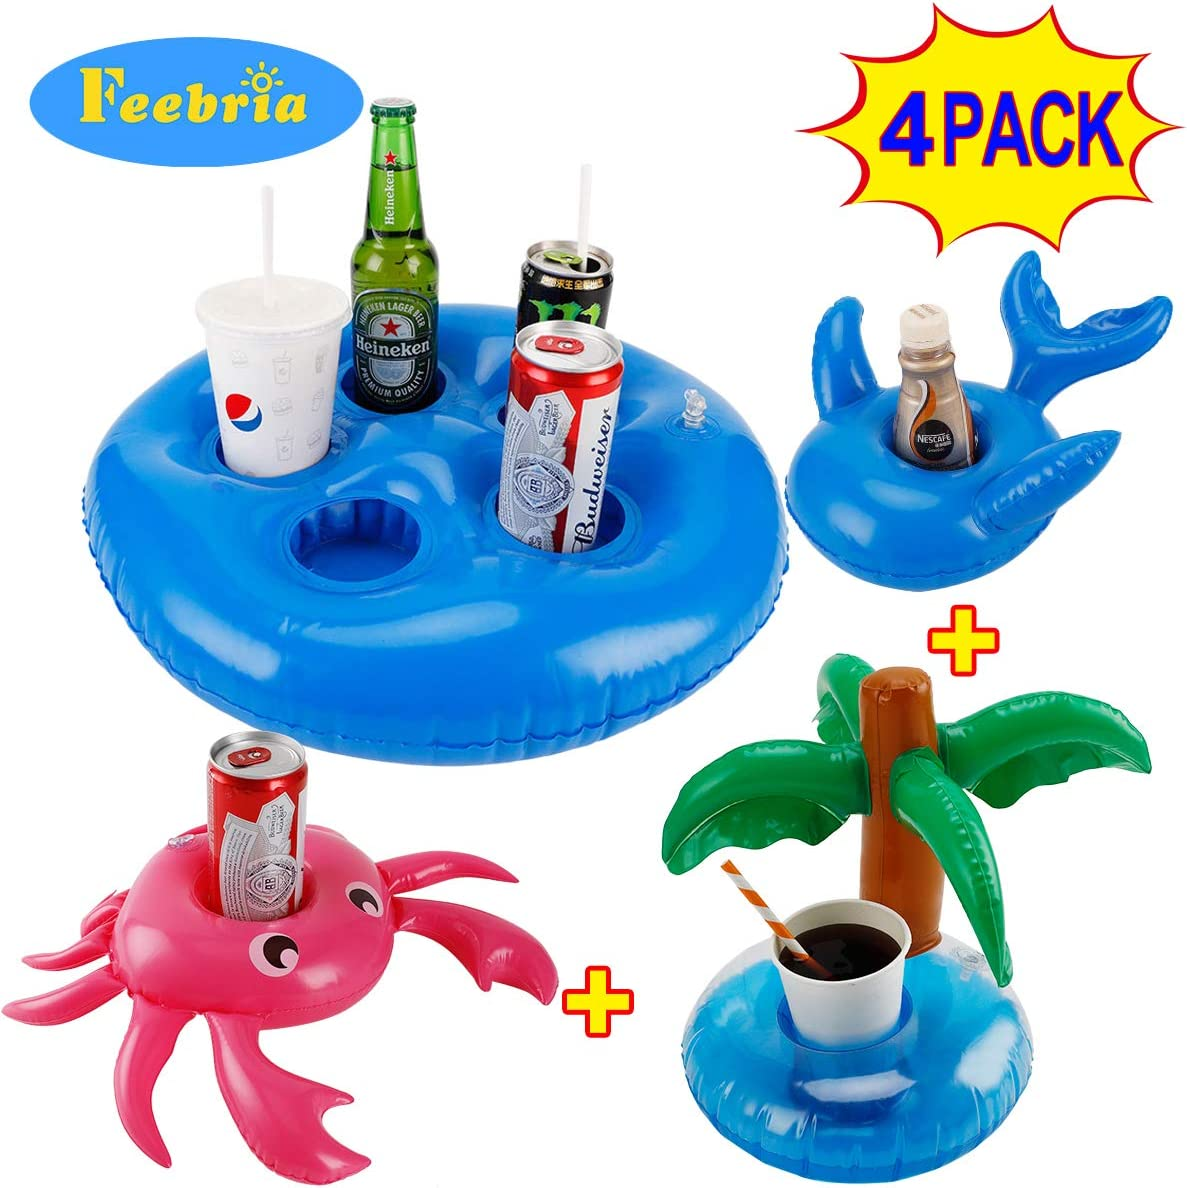 FEEBRIA Inflatable Blue Drink Holders for Pool, Hot Tub, Ocean & River, Cupholder Floaties to Float Your Beverages for Parties & Beach (4 Pack)